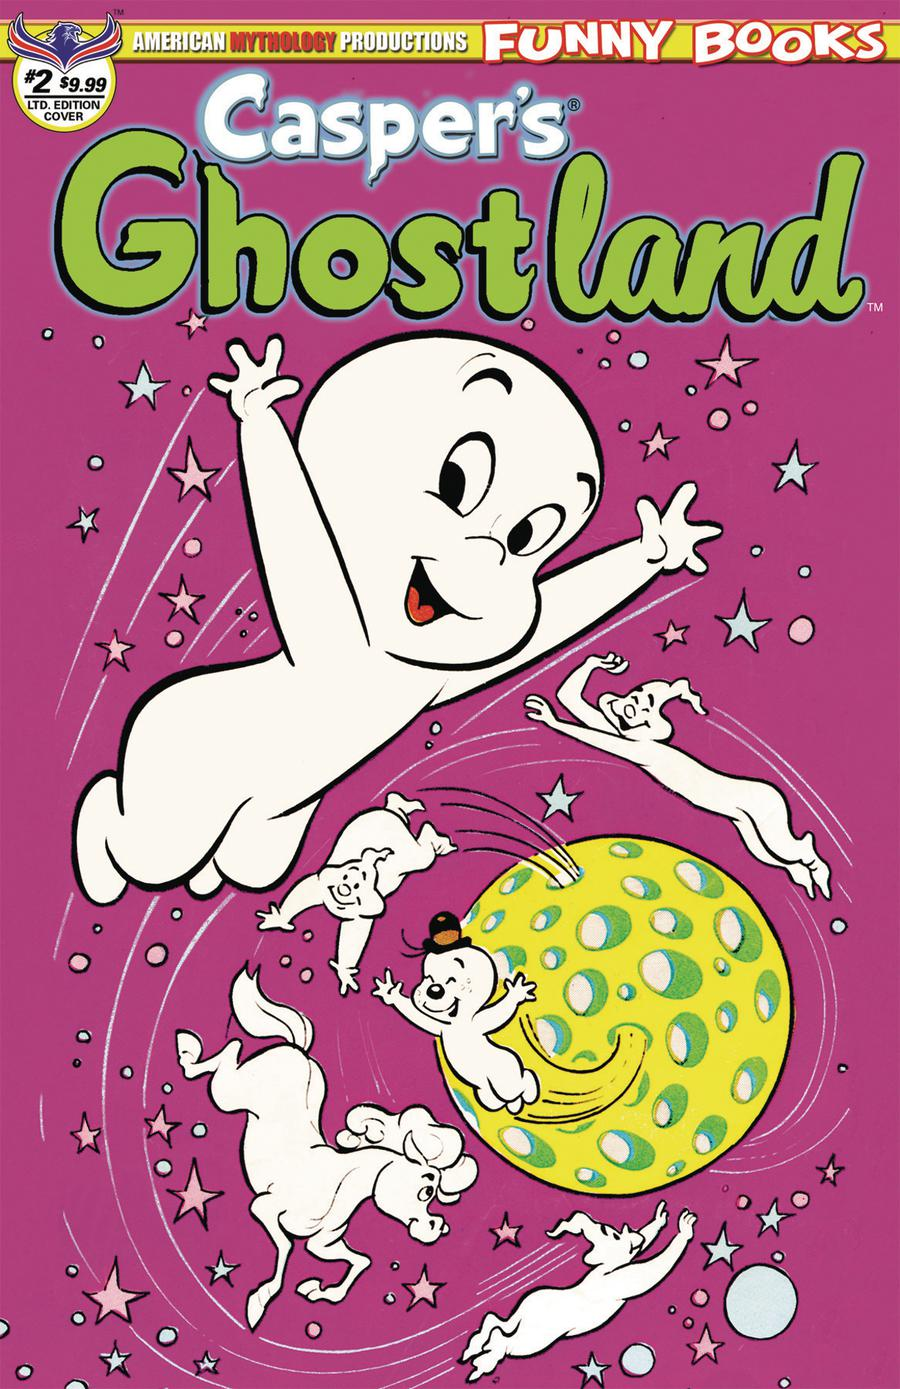 Caspers Ghostland Vol 2 #2 Cover C Variant Retro Animation Limited Edition Cover